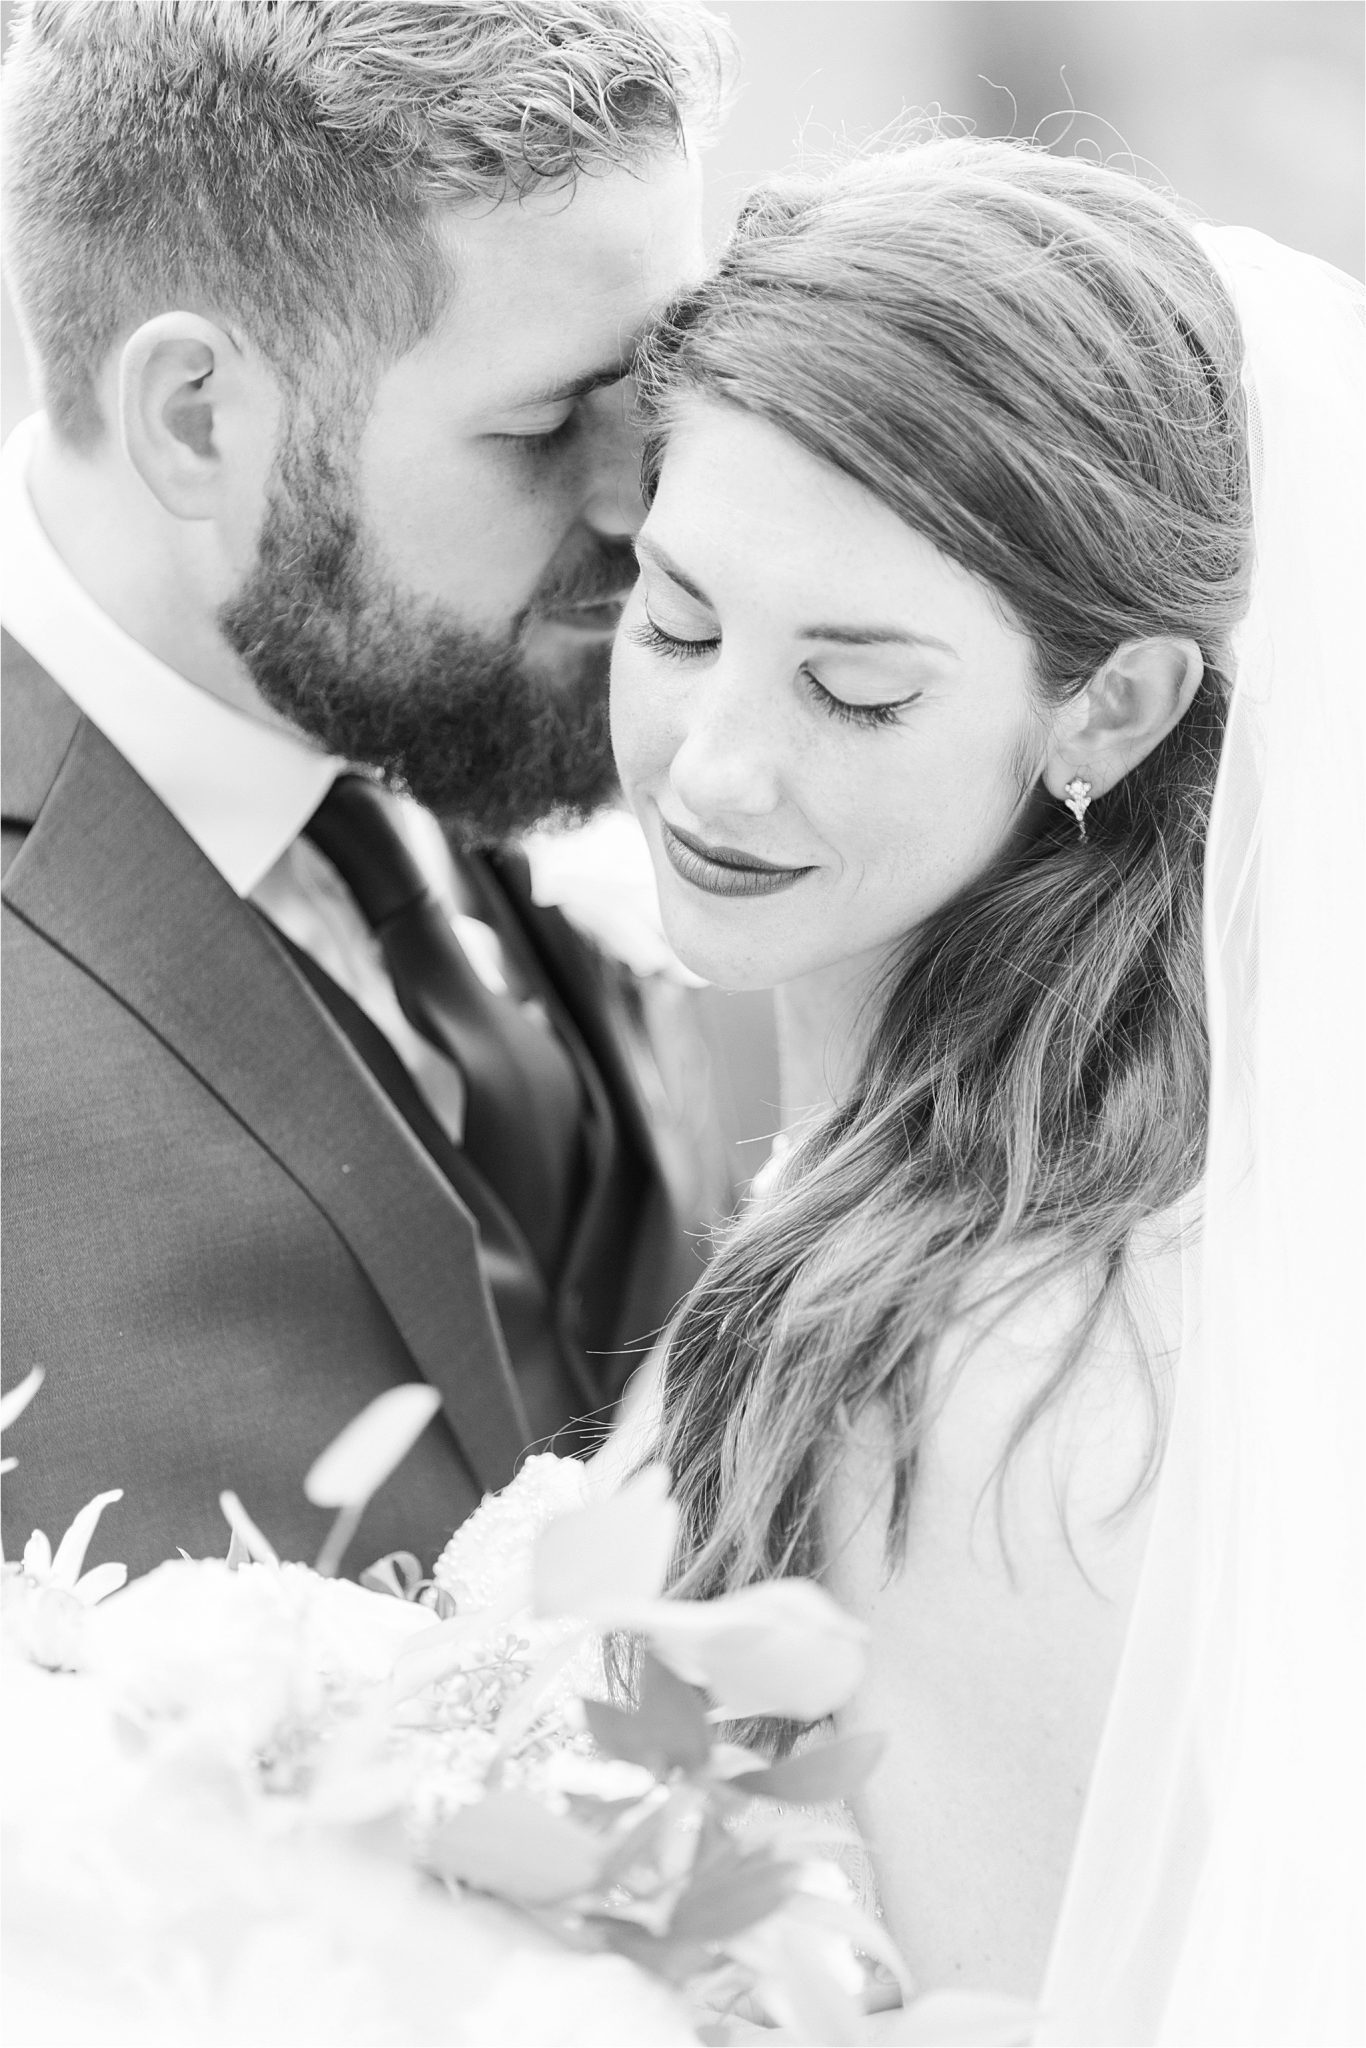 bride and groom-wedding photos-portraits-close ups-precious moments